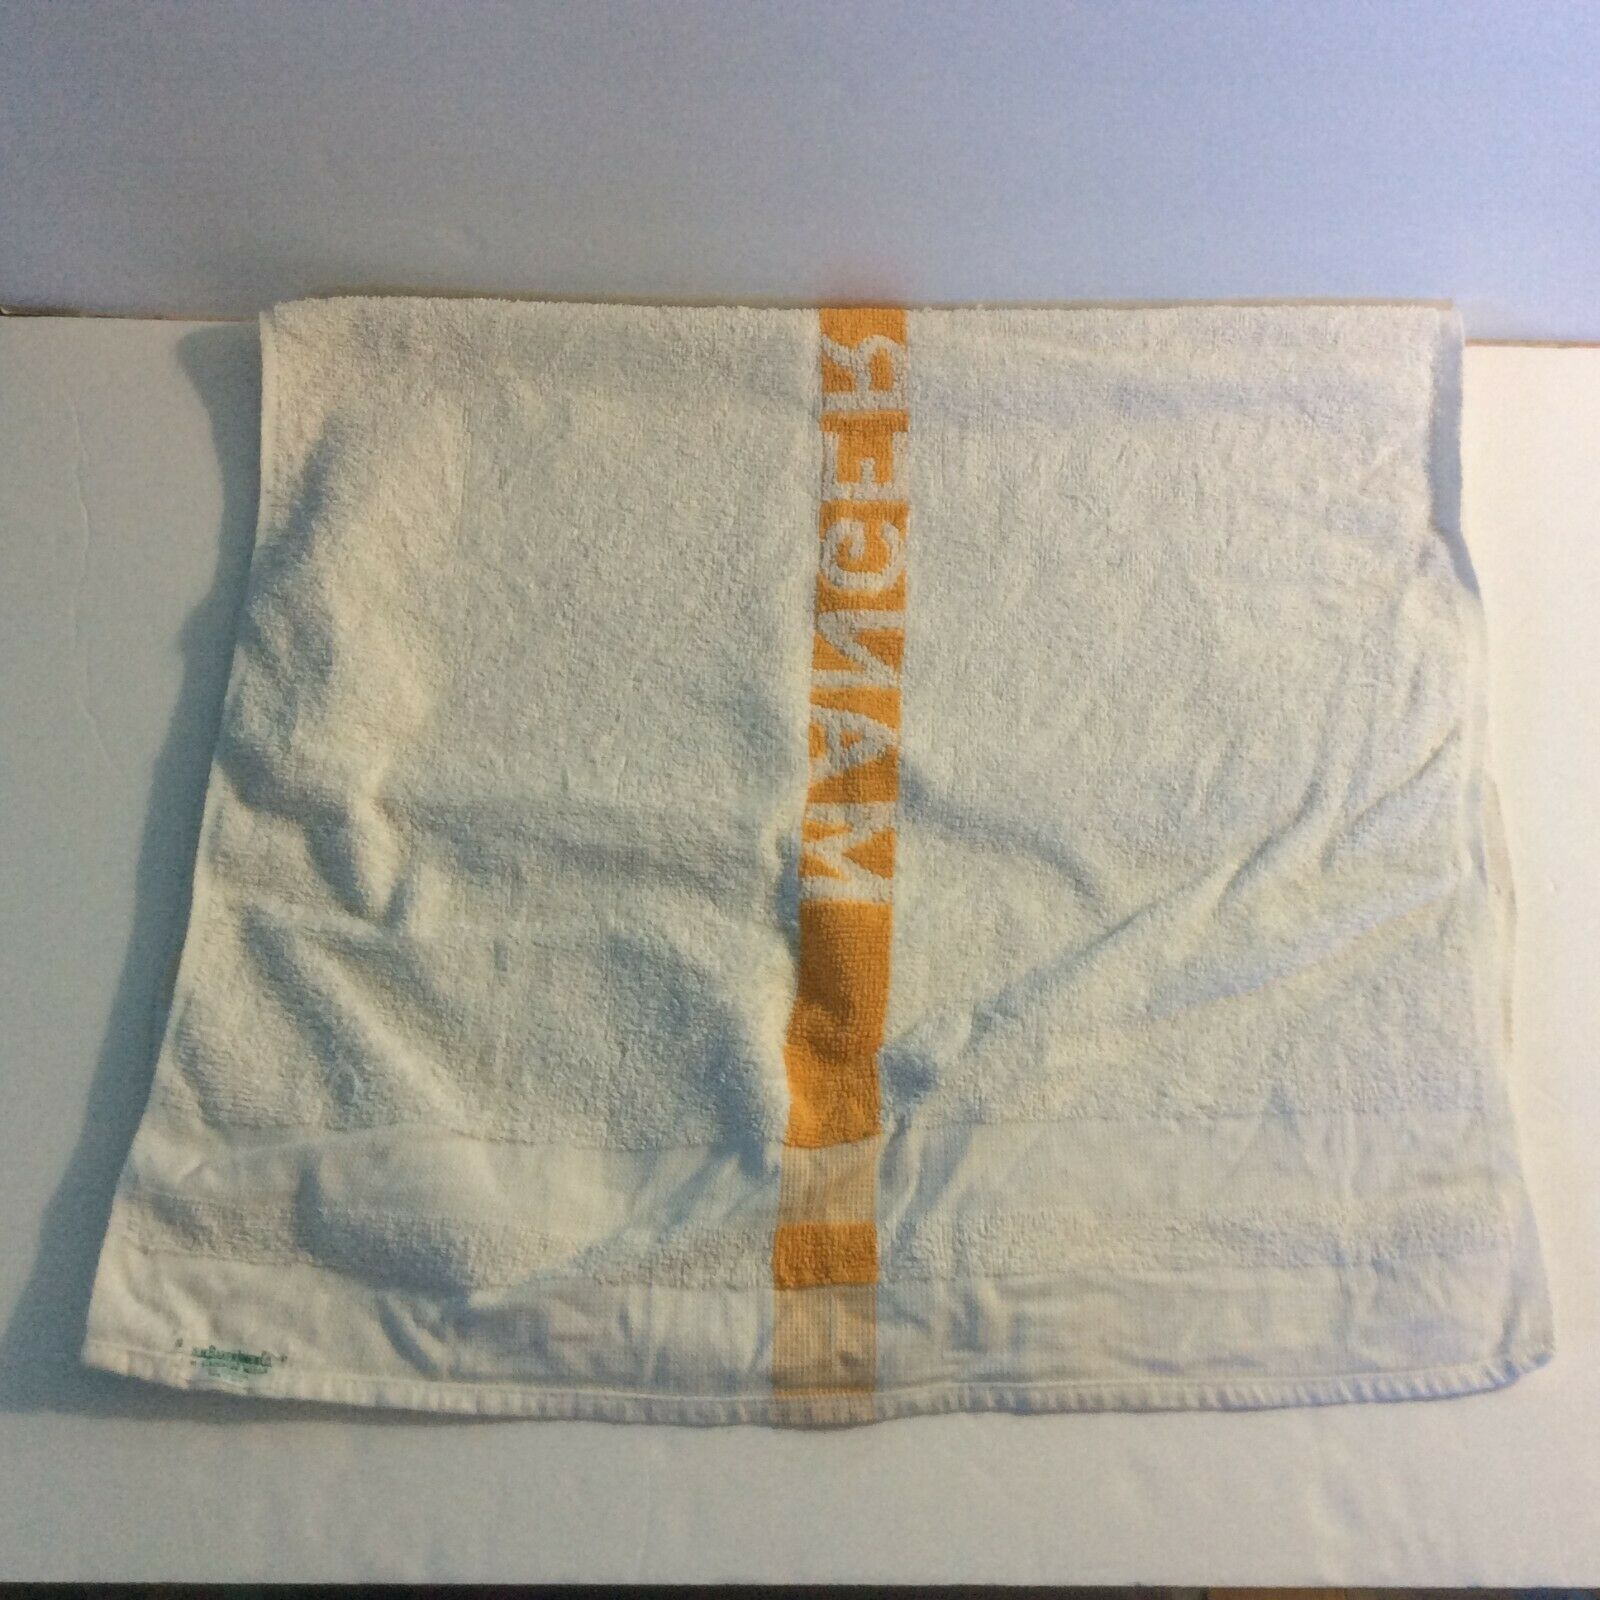 Manger Hotels Bath Towel White Orange 100% Cotton HW Baker Linen Co Cannon Mills image 5